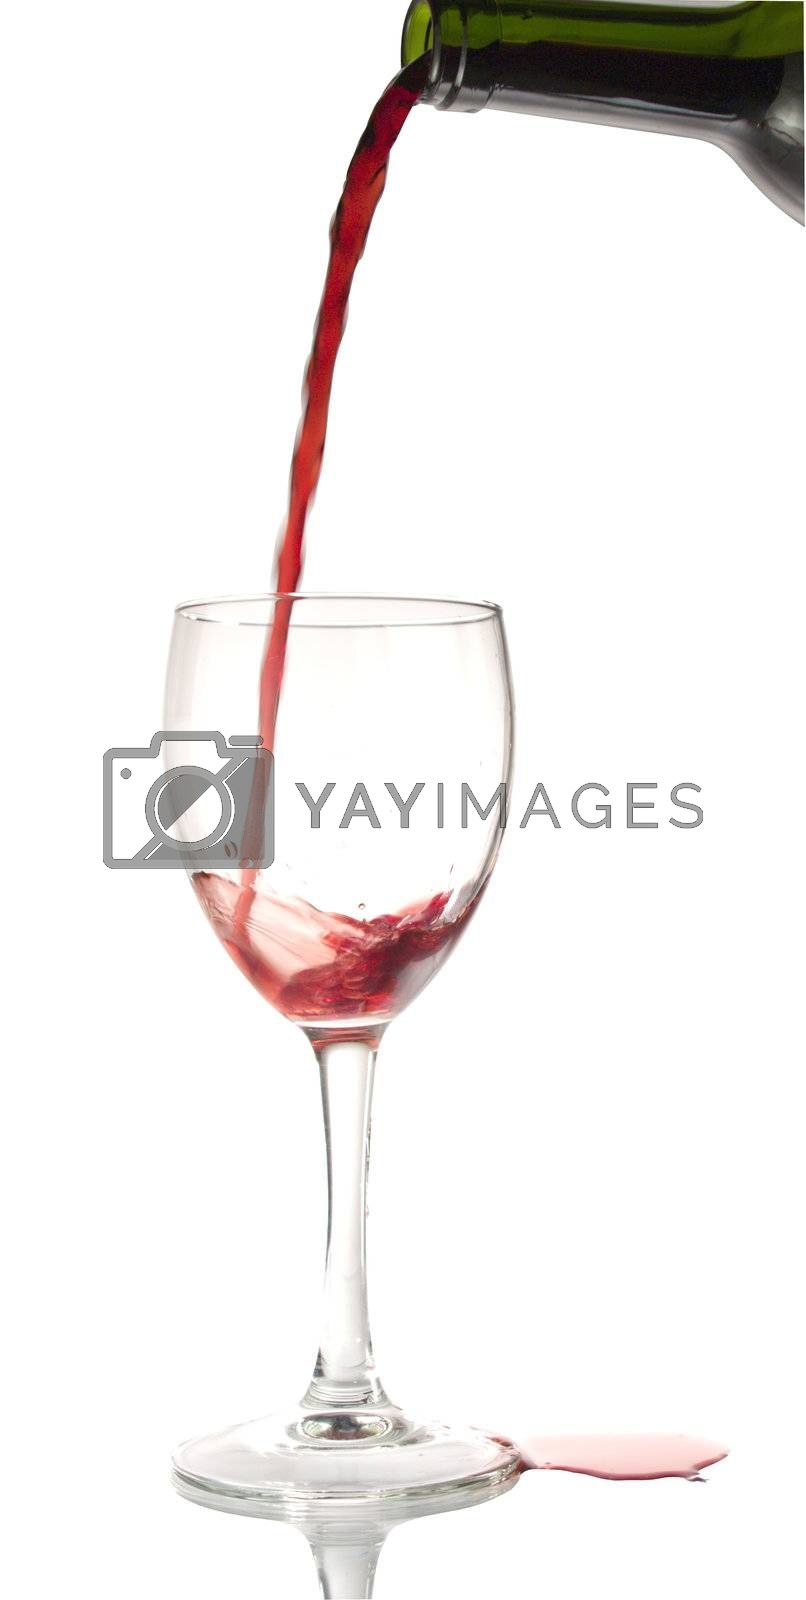 Pouring red wine into a wine glass.